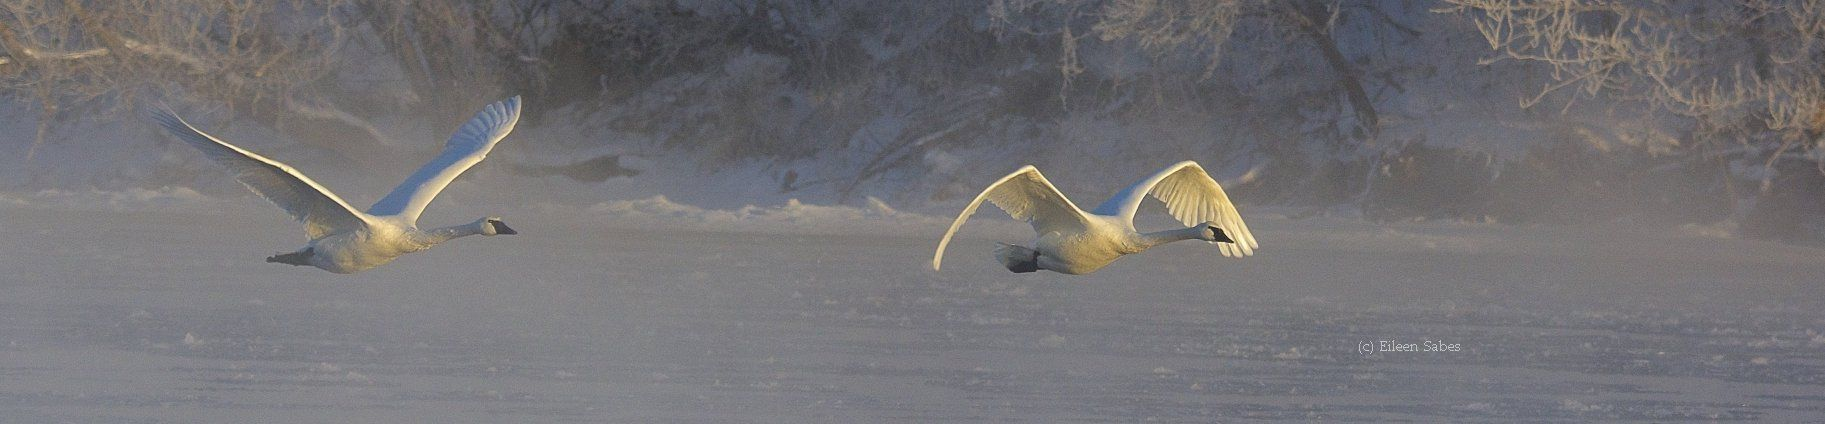 The Trumpeter Swan Society is located in Plymouth, MN. Our mission is to assure the vitality and welfare of wild Trumpeter Swans